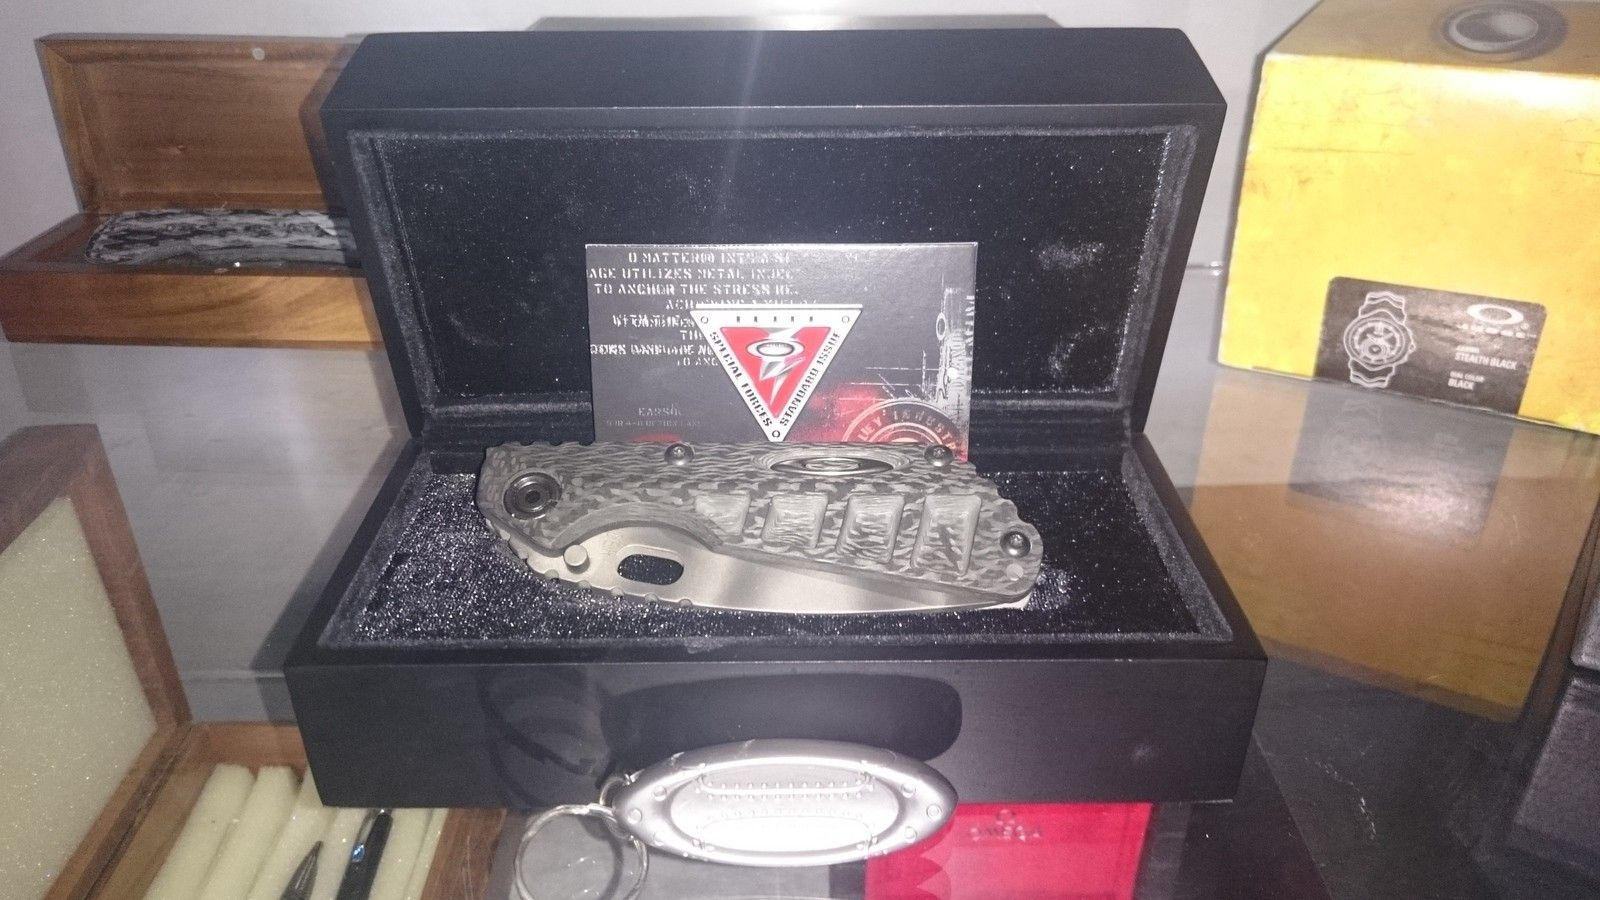 Oakley Knife Elite Strider Machined Carbon Fiber SNG with camo blade - 2015-07-16 13.44.20.jpg